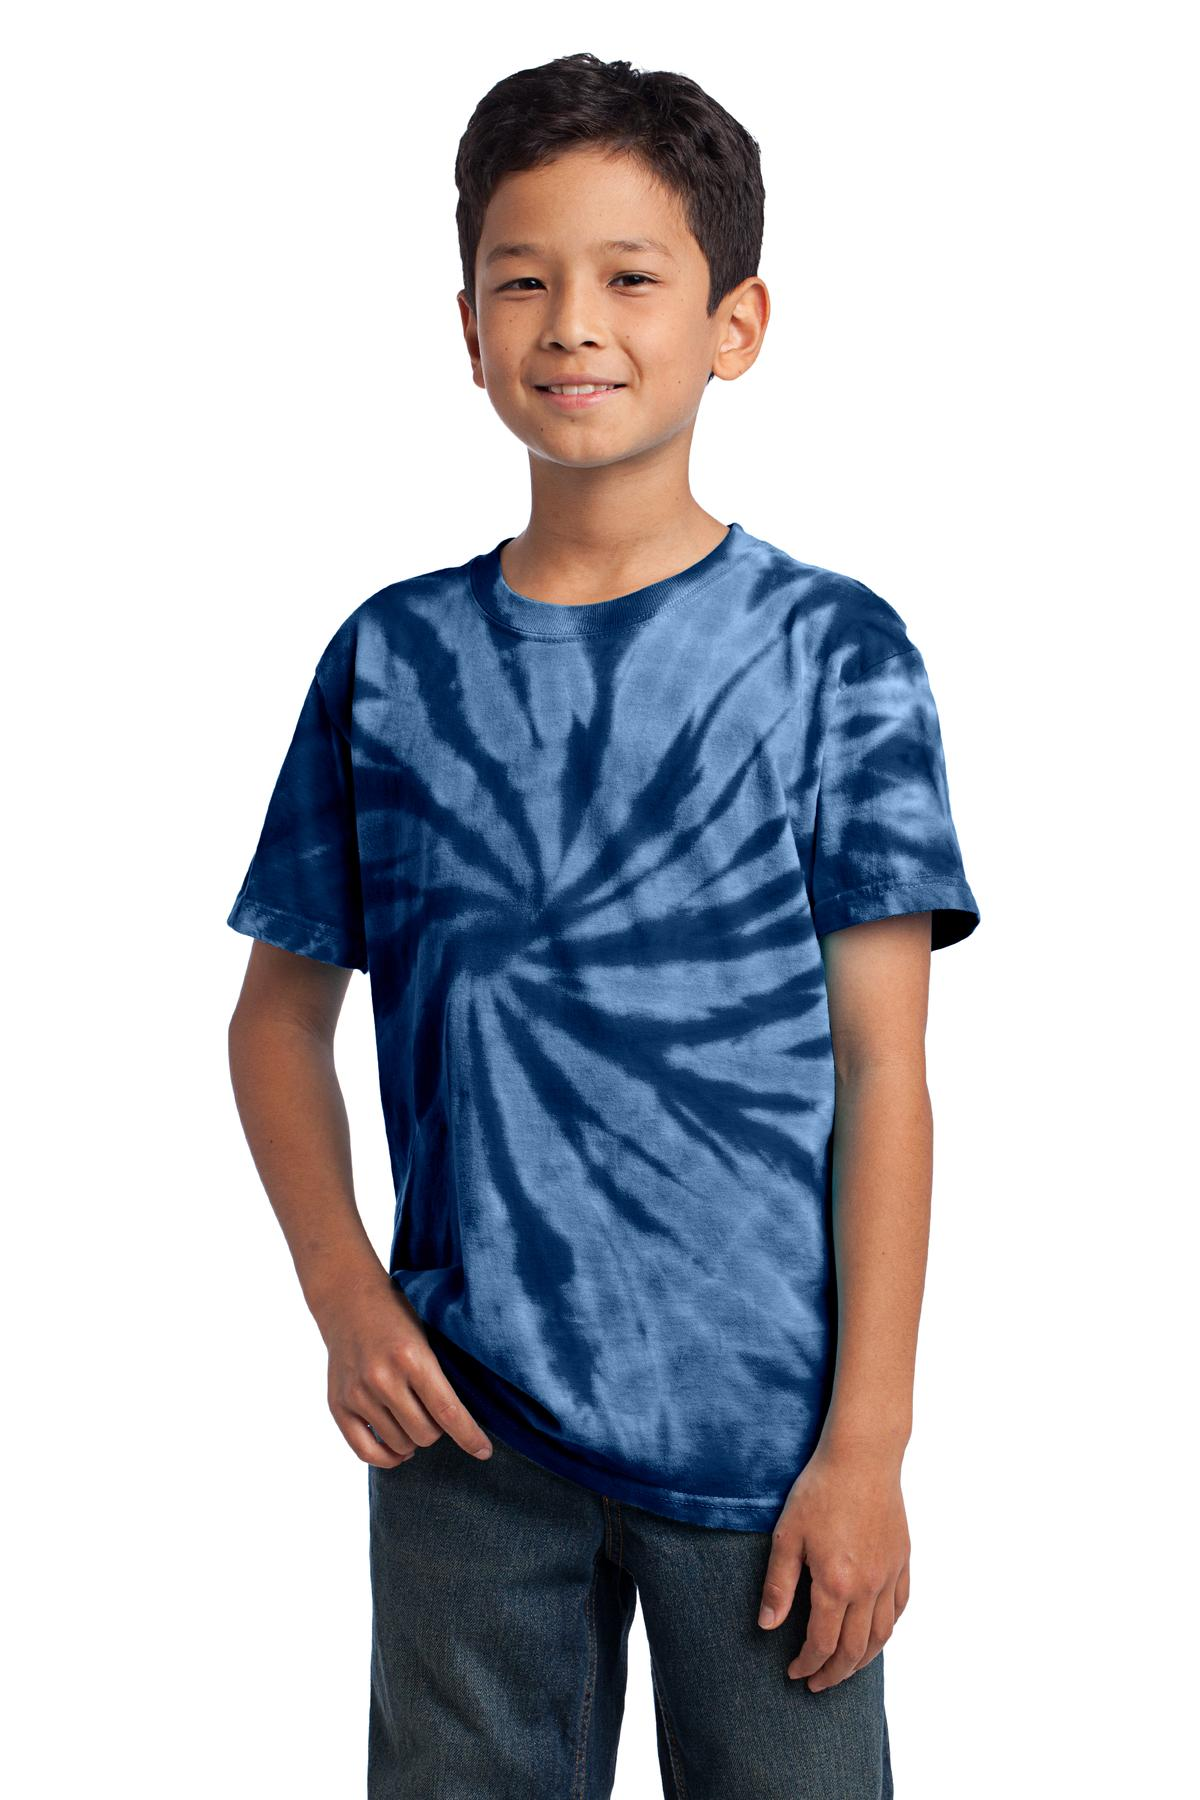 Port & Company Youth Tie-Dye Tee. Turquoise. M.